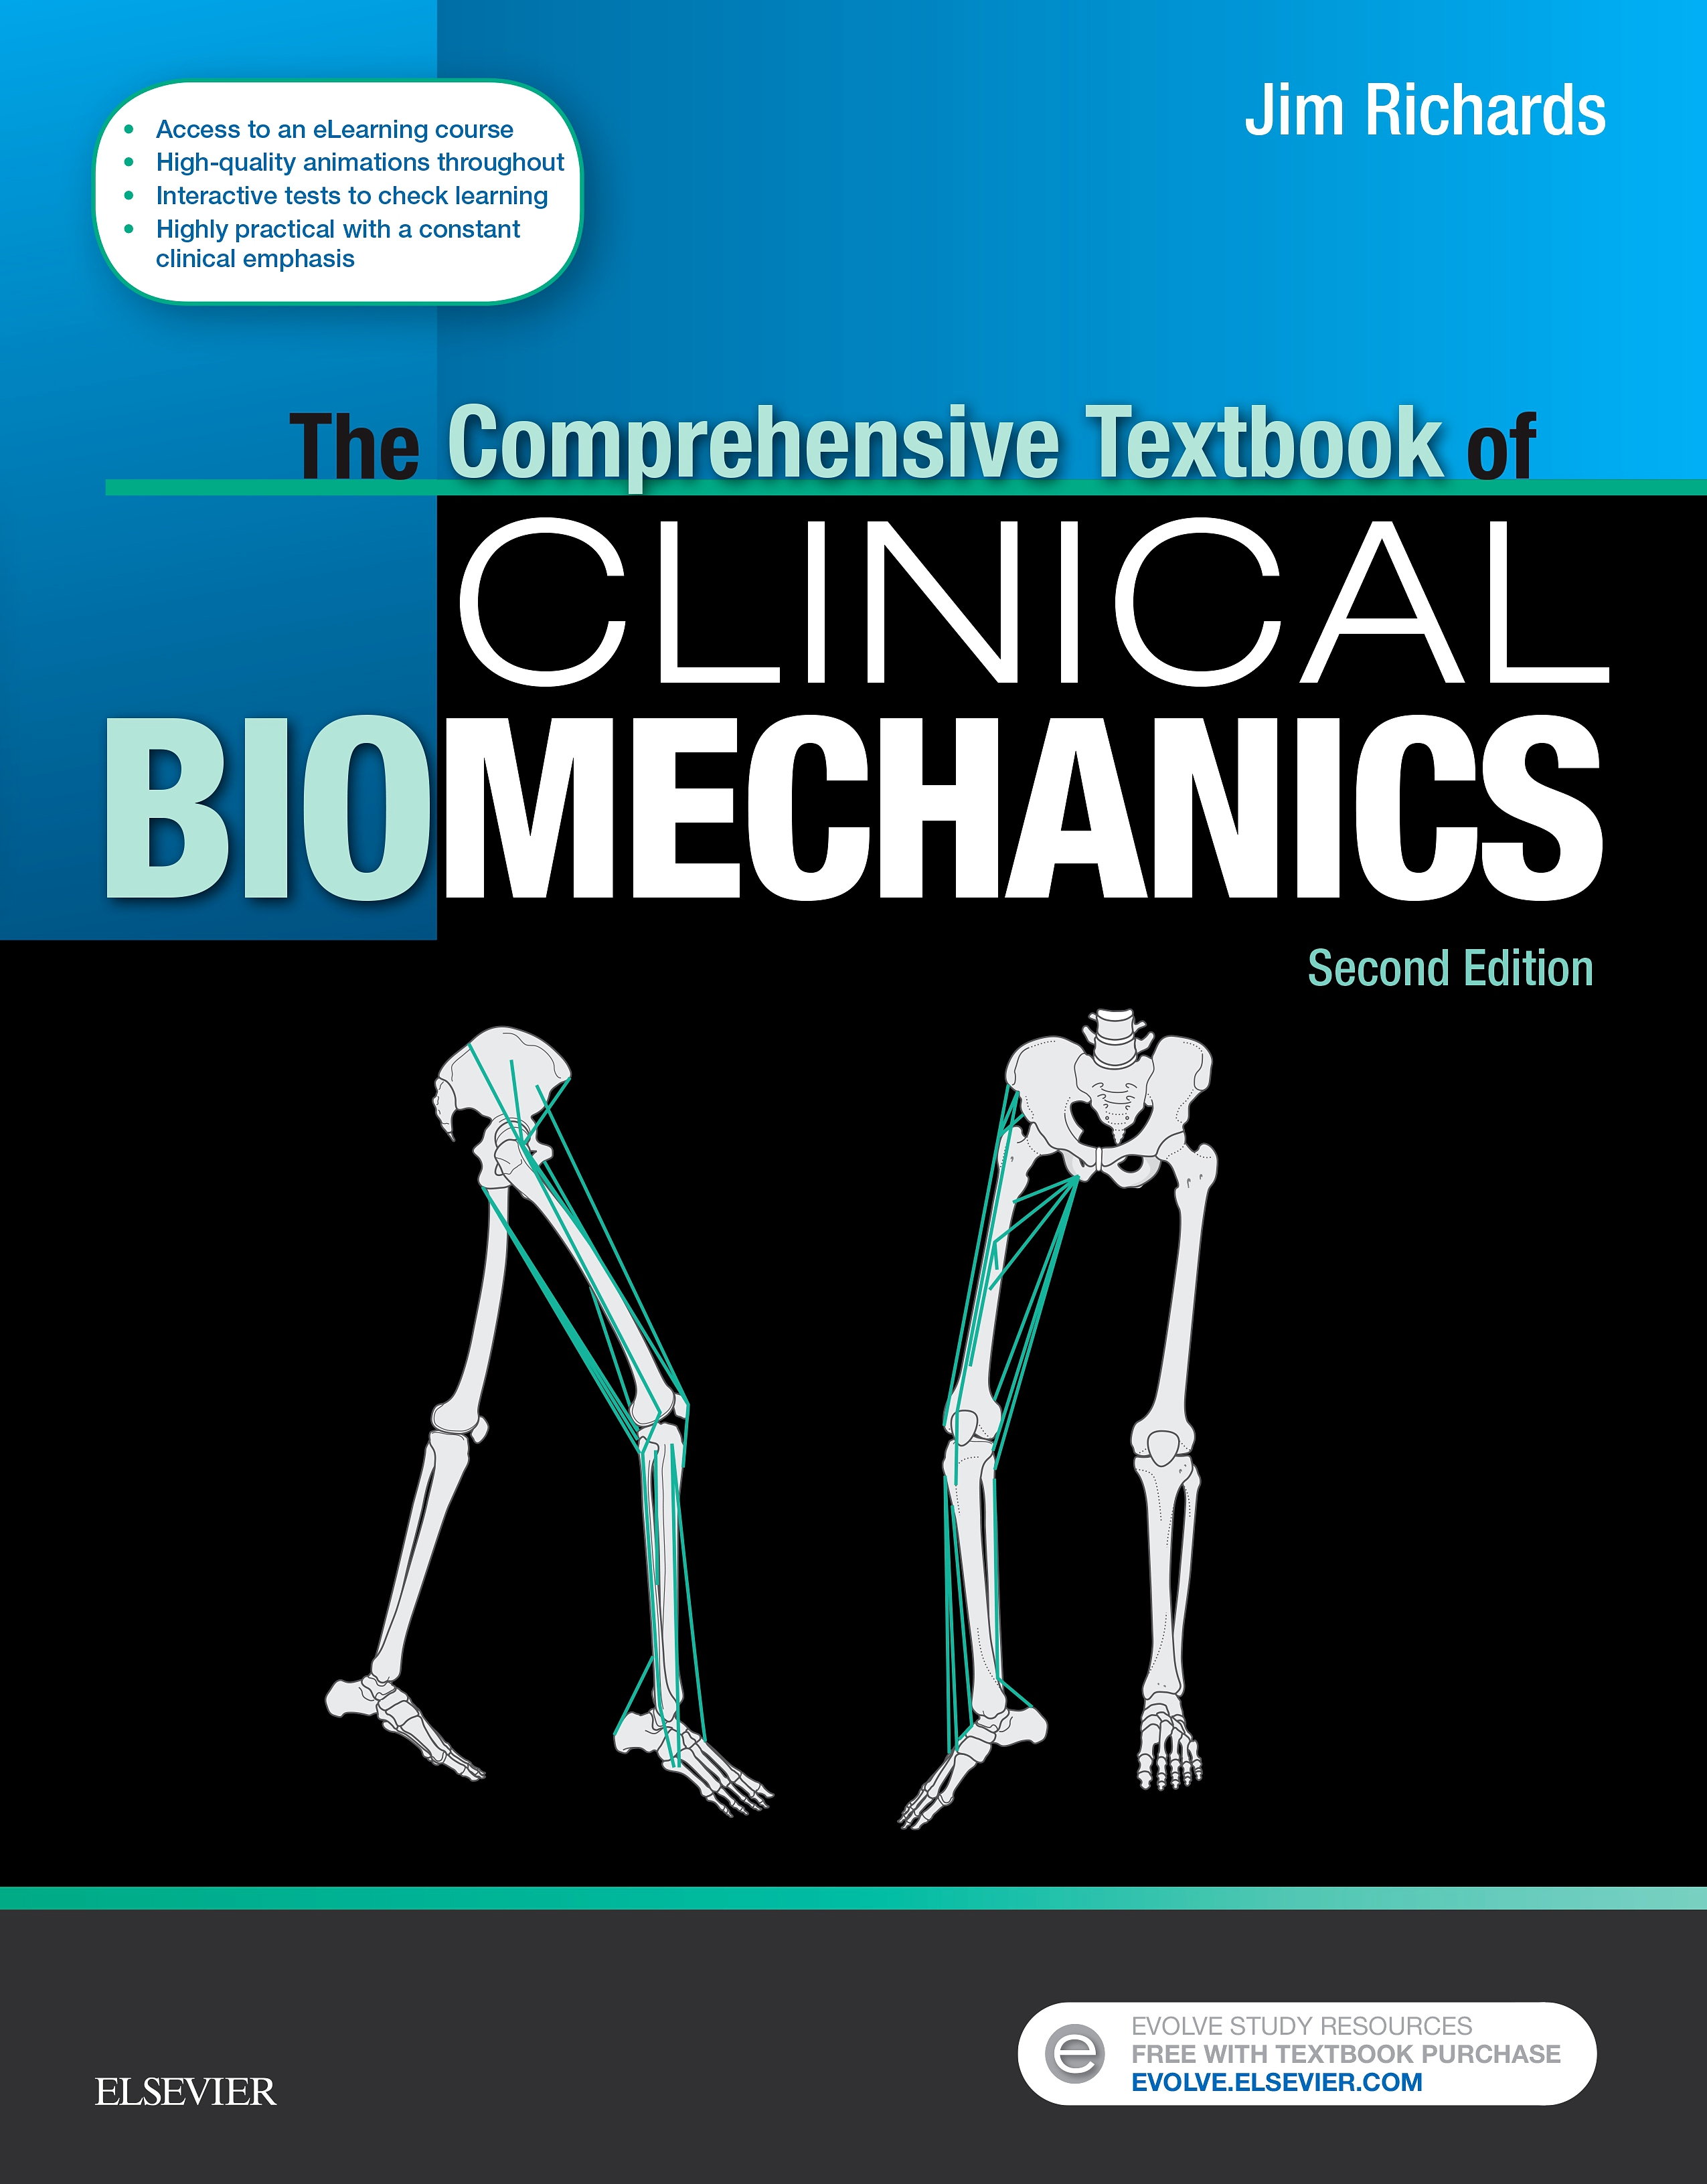 Evolve Resources for The Comprehensive Textbook of Clinical Biomechanics, 2nd Edition